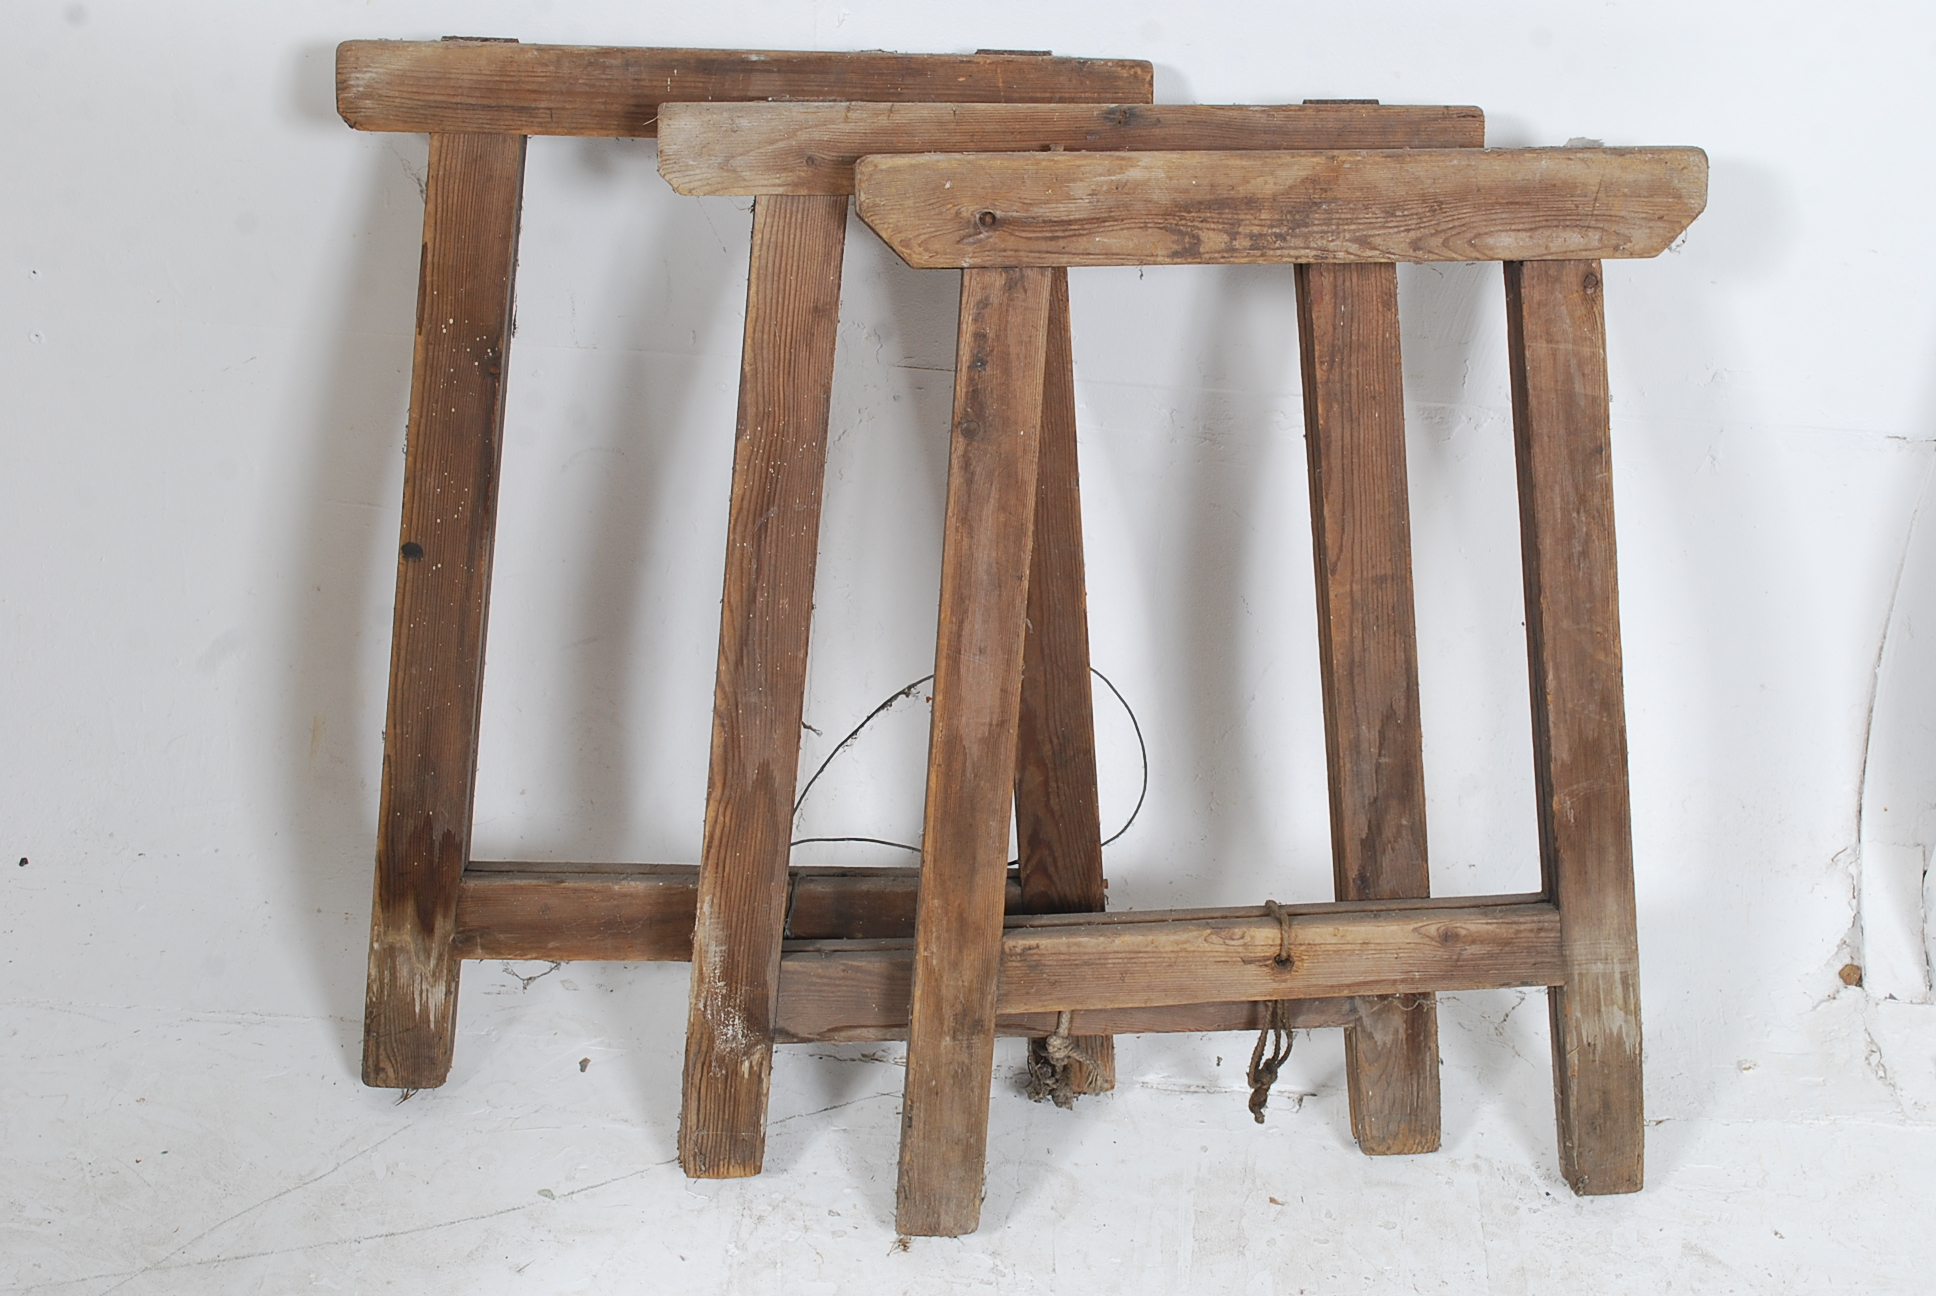 Lot 207   A Set Of 3 Vintage Mid 20th Century Wooden Trestle Table Ends  Complete Part 85